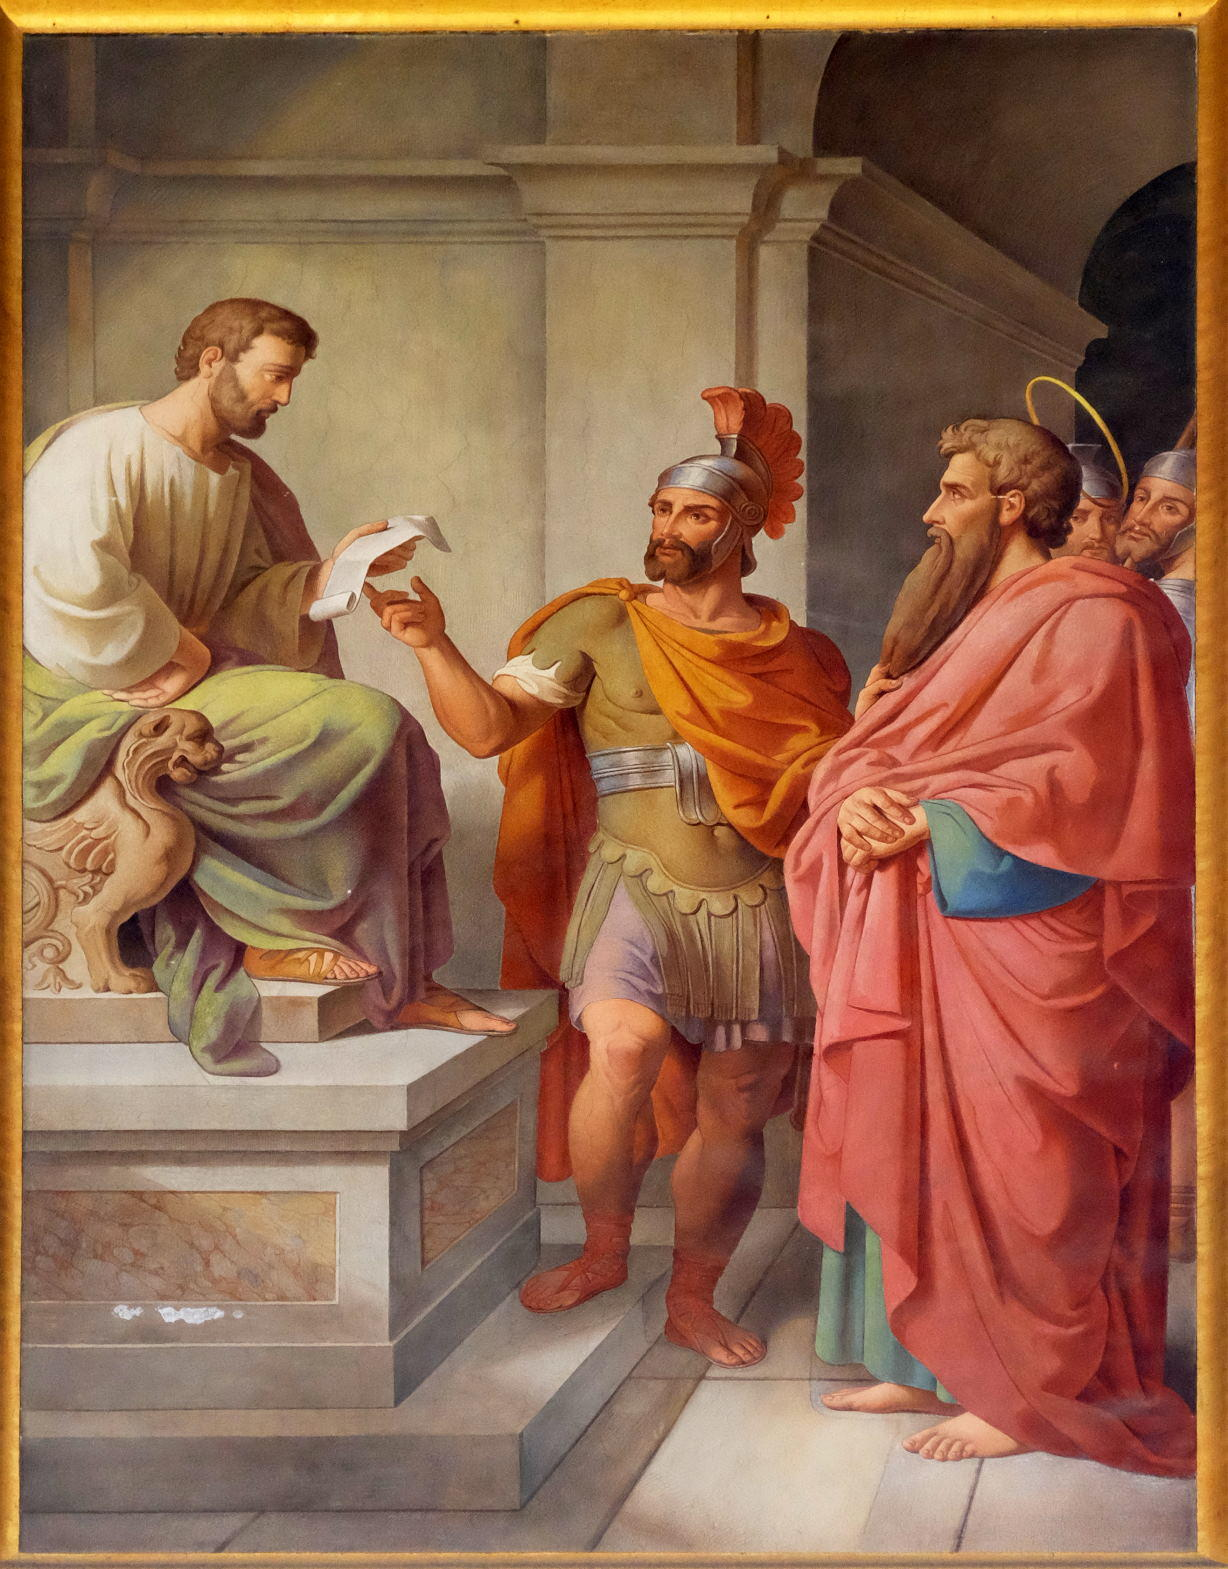 The fresco with the image of the life of St. Paul Paul Before Publius in Malta, basilica of Saint Paul Outside the Walls